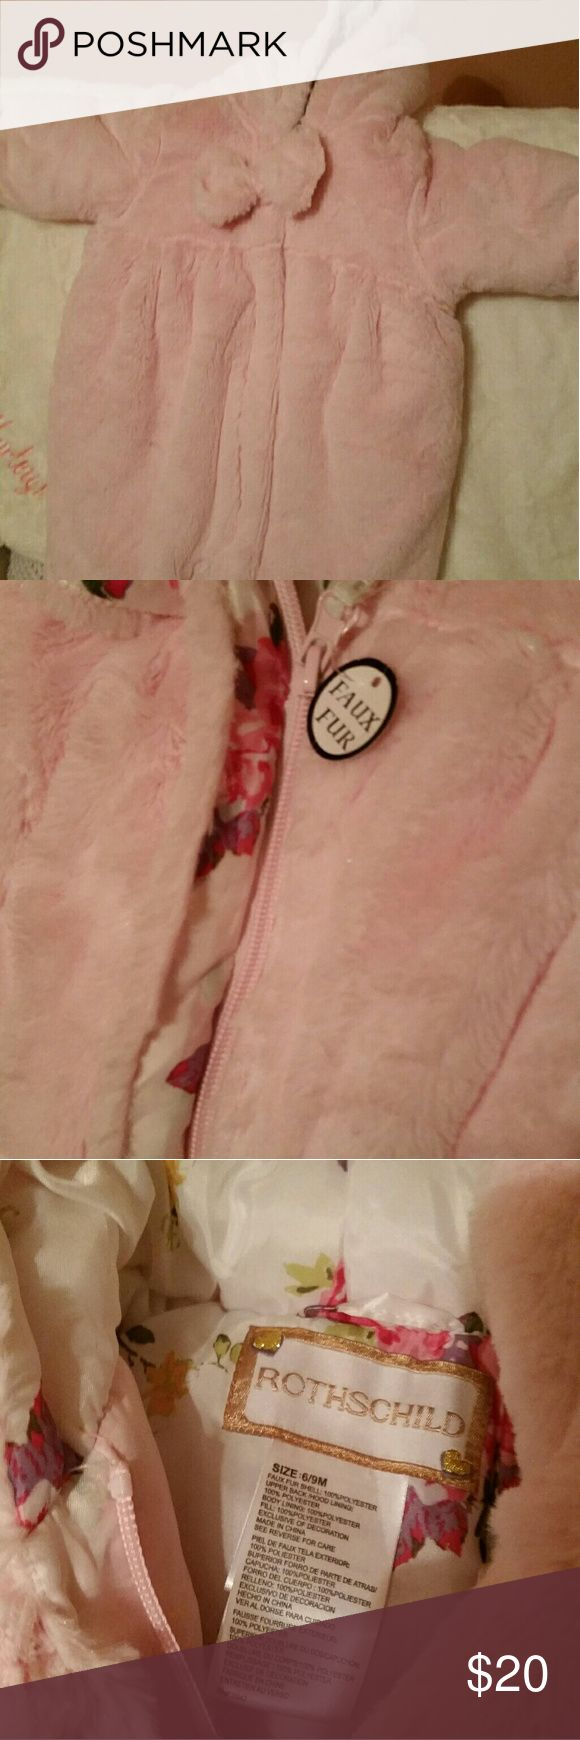 NWOT Rothschild faux fur infant snow suit NWOT. 6-9 months Bought for my daughter but she'll never be able to wear by the time we get another snow. :( It is absolutely adorable. Super cute bow to cover zipper, fold over hands and hooded. Still has one of the tags on it. Let me know if you would like more pictures. Rothschild Jackets & Coats Puffers #infantsnowsuit